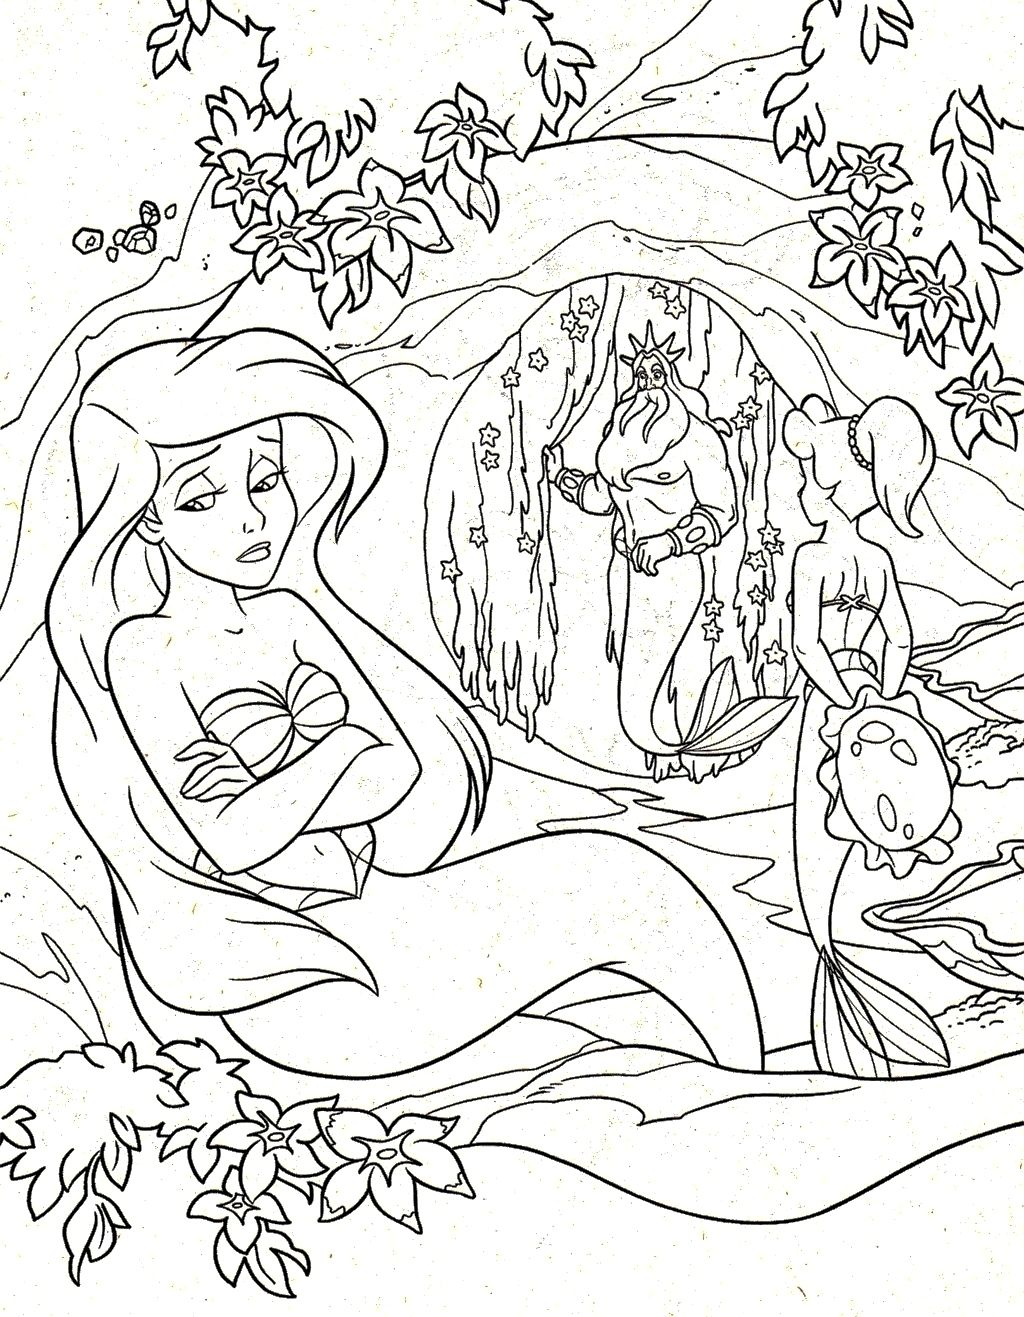 Princess Ariel Sad Coloring Page | Coloring Pages | Pinterest ...